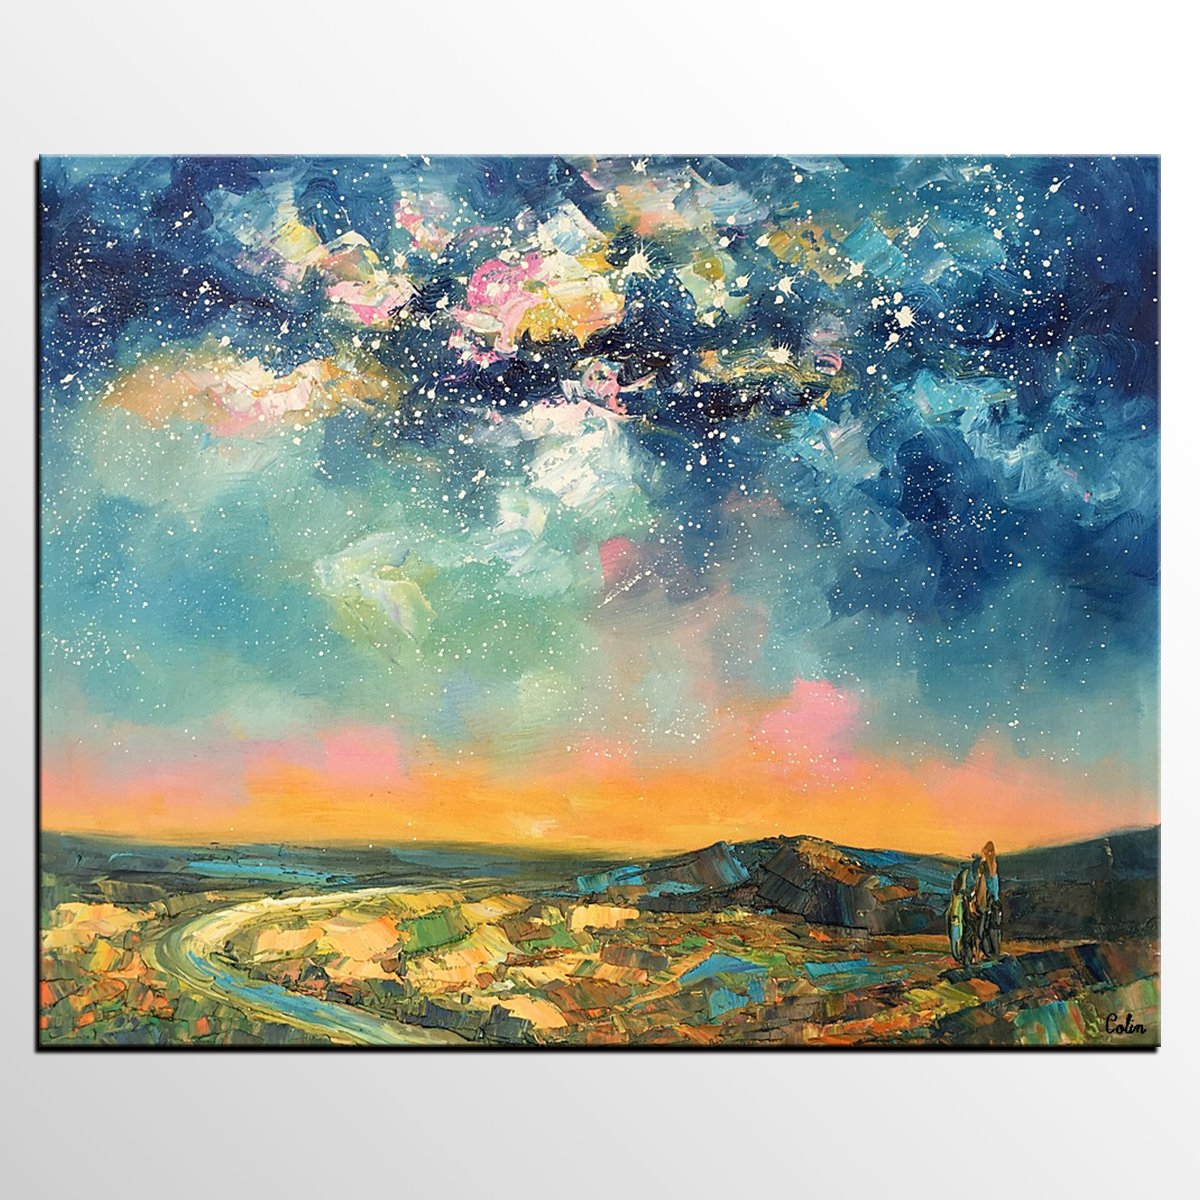 starry night sky painting, abstract landscape painting from artworkcanvas